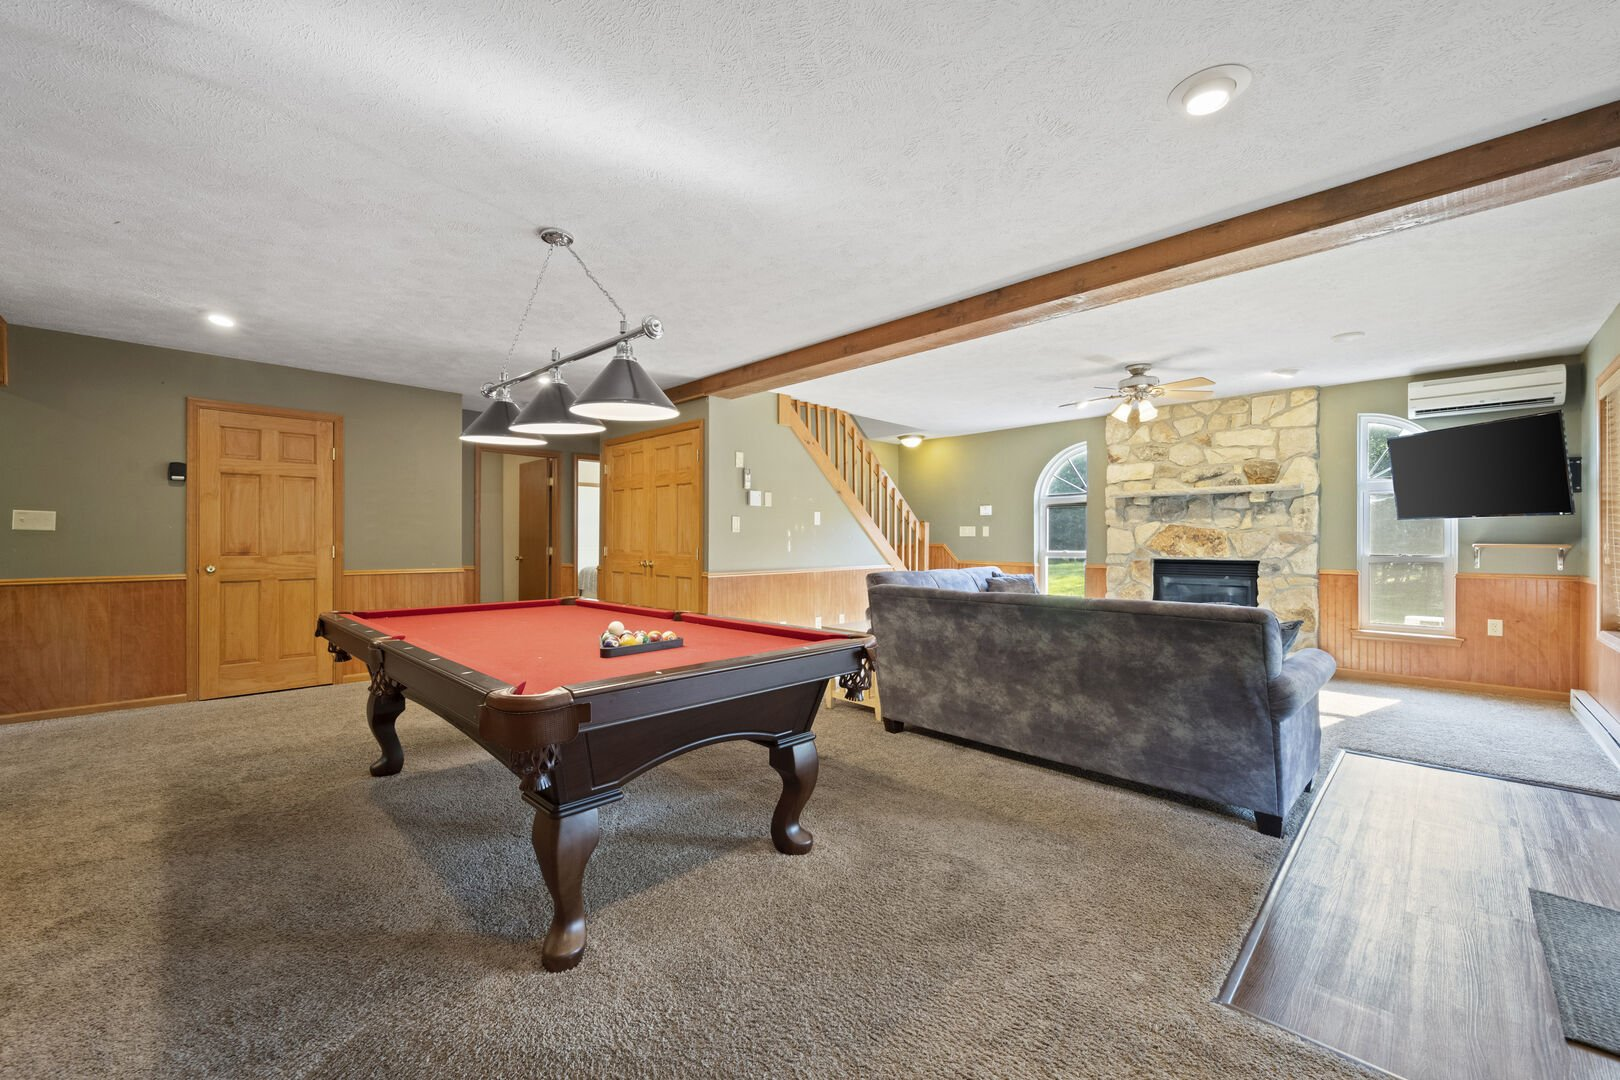 View of Game Room with Pool Table and Fireplace